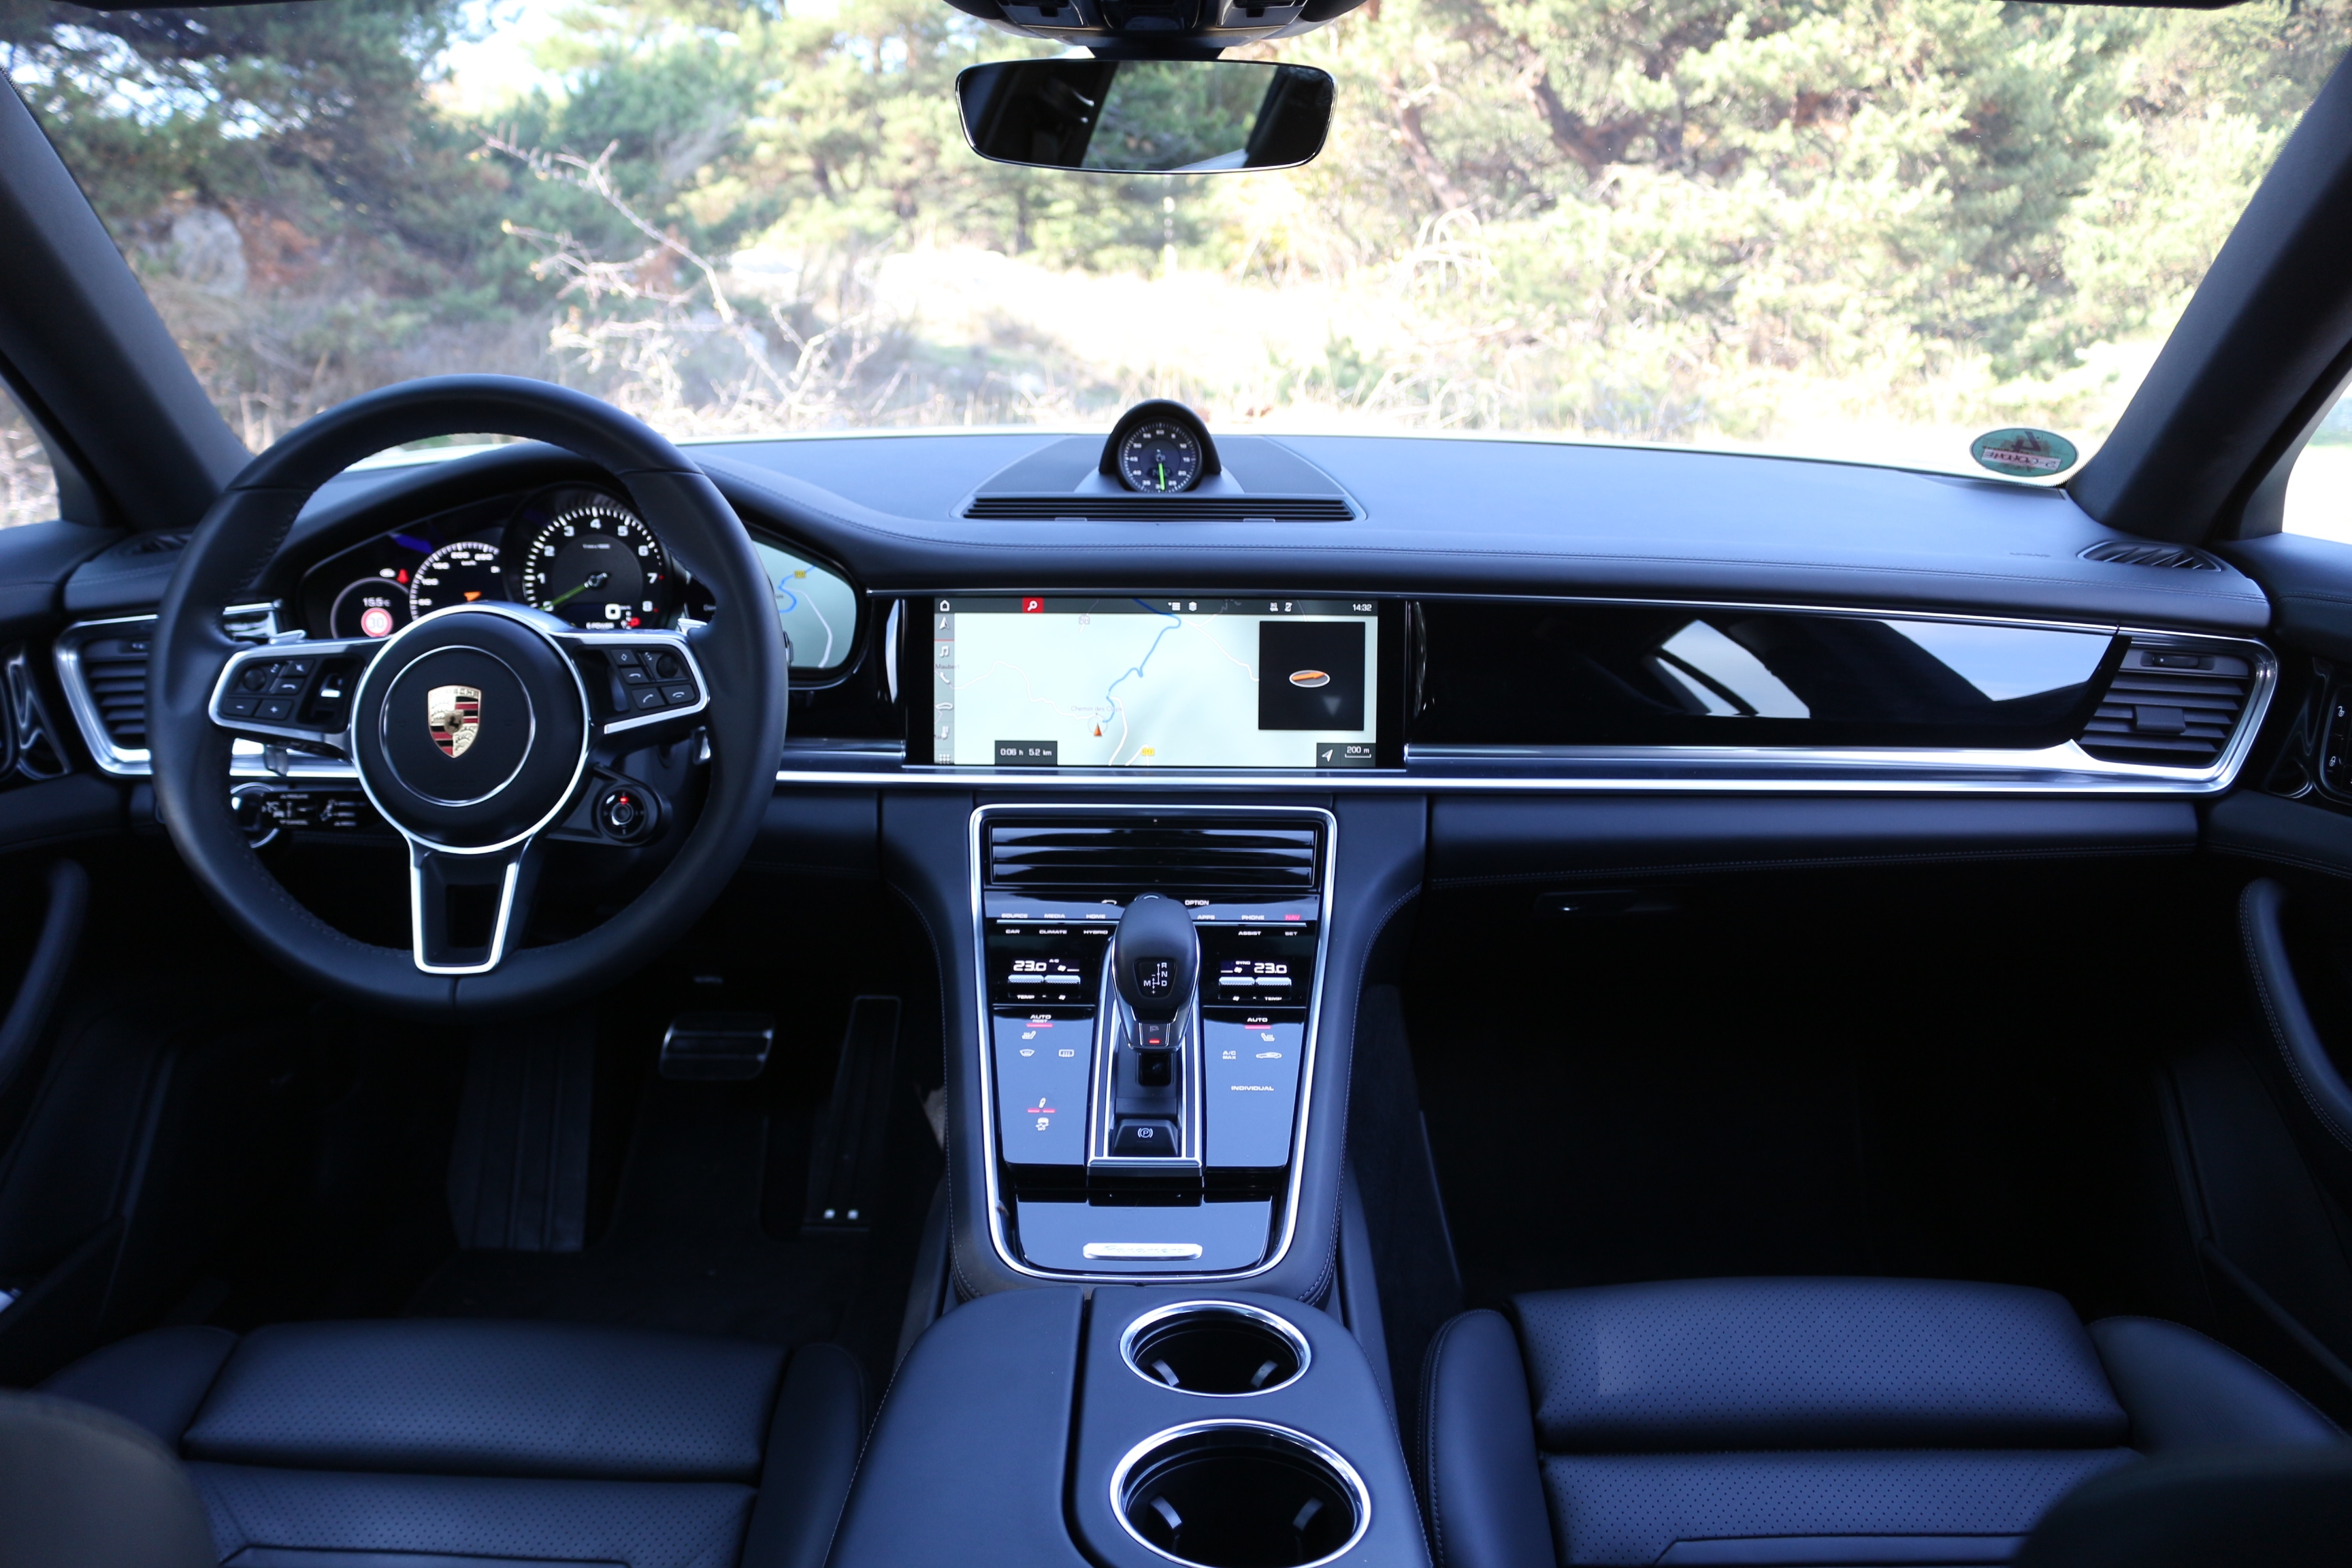 essai vid o porsche panamera sport turismo coffre jouer. Black Bedroom Furniture Sets. Home Design Ideas